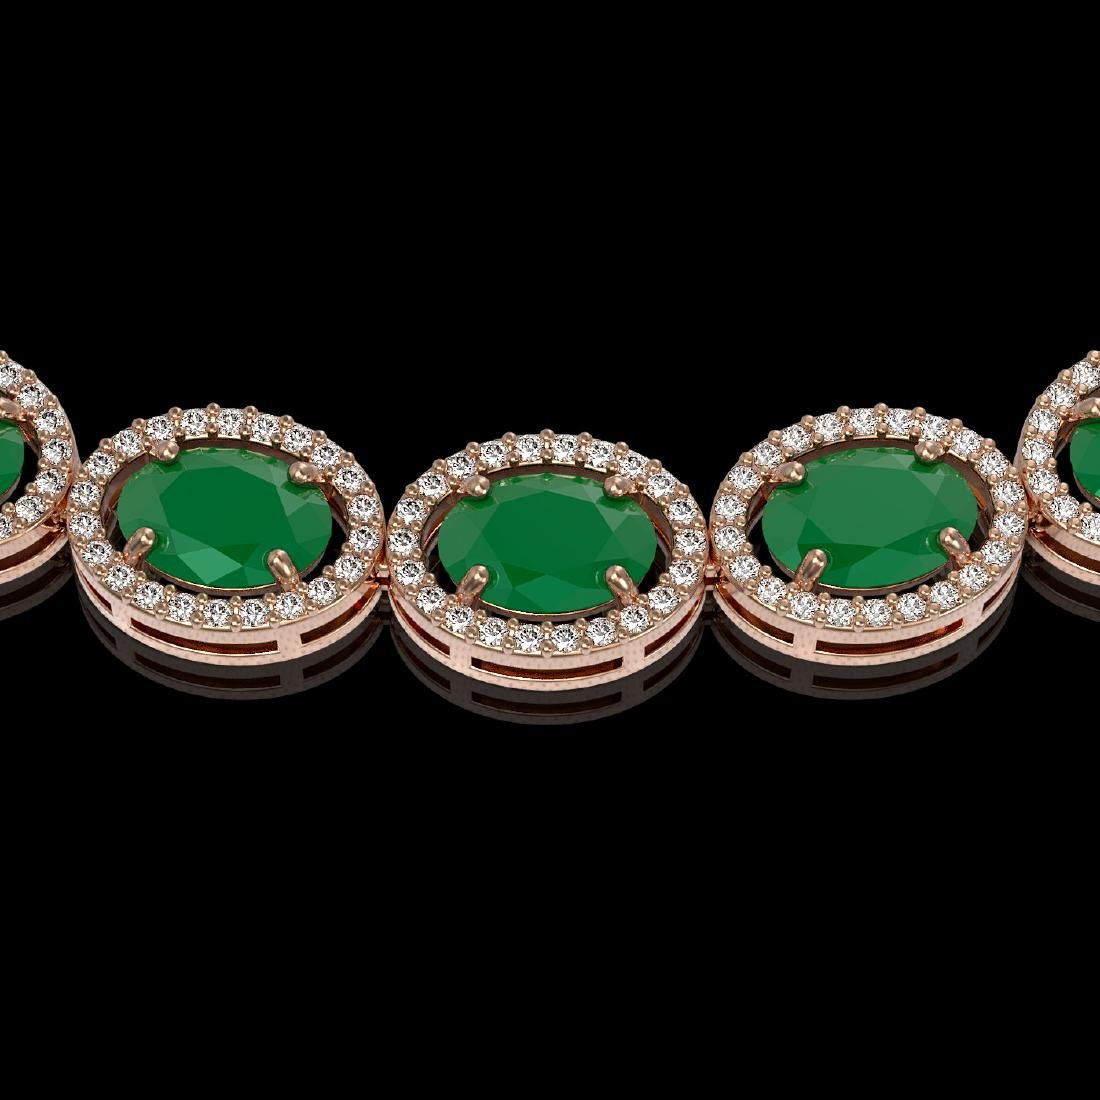 52.15 CTW Emerald & Diamond Halo Necklace 10K Rose Gold - 3